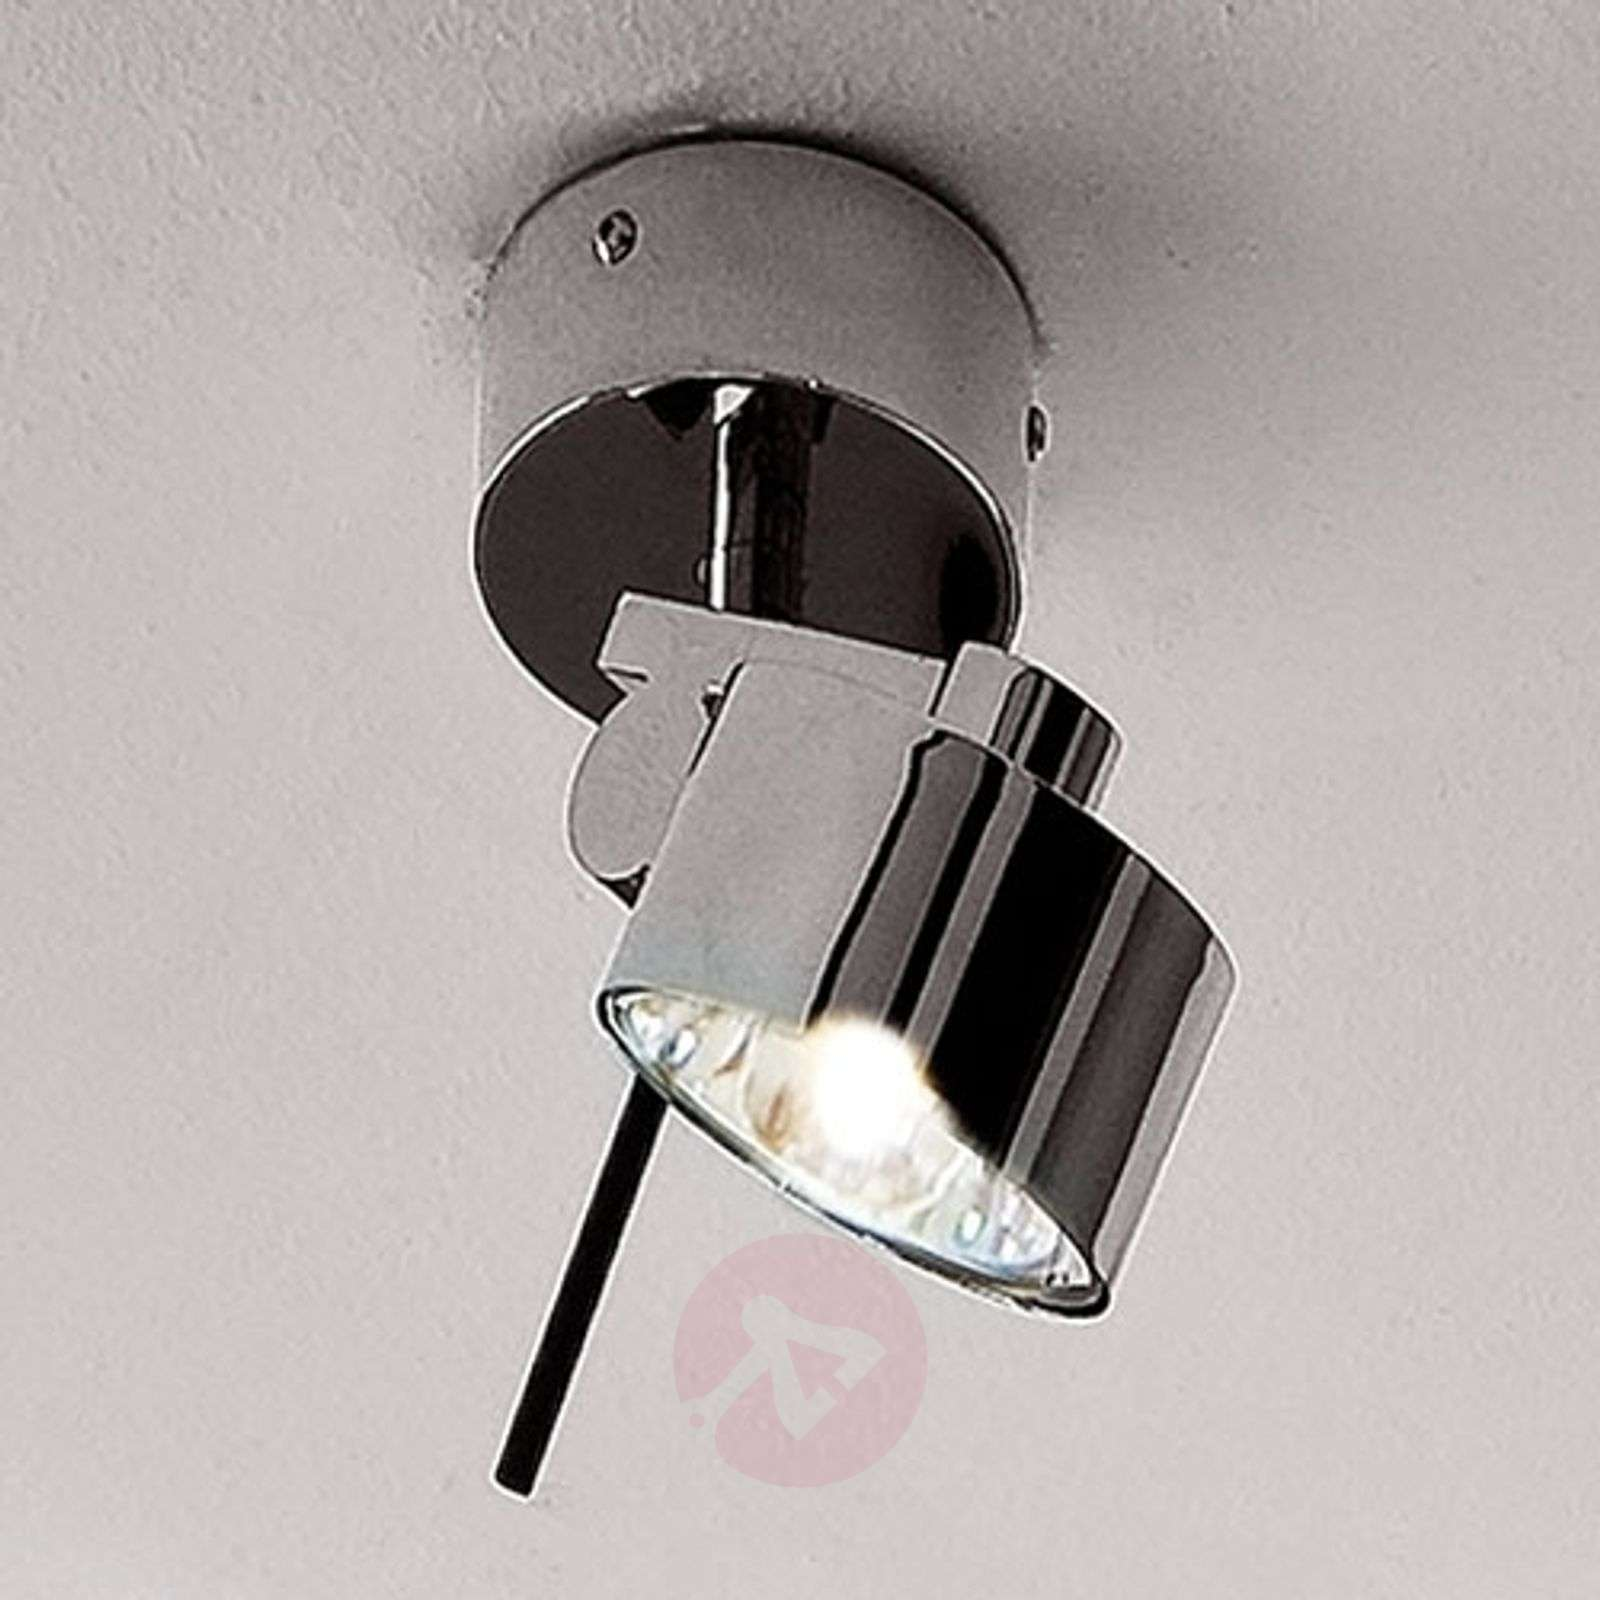 Chrome-plated wall and ceiling spotlight AX20_1088037_1